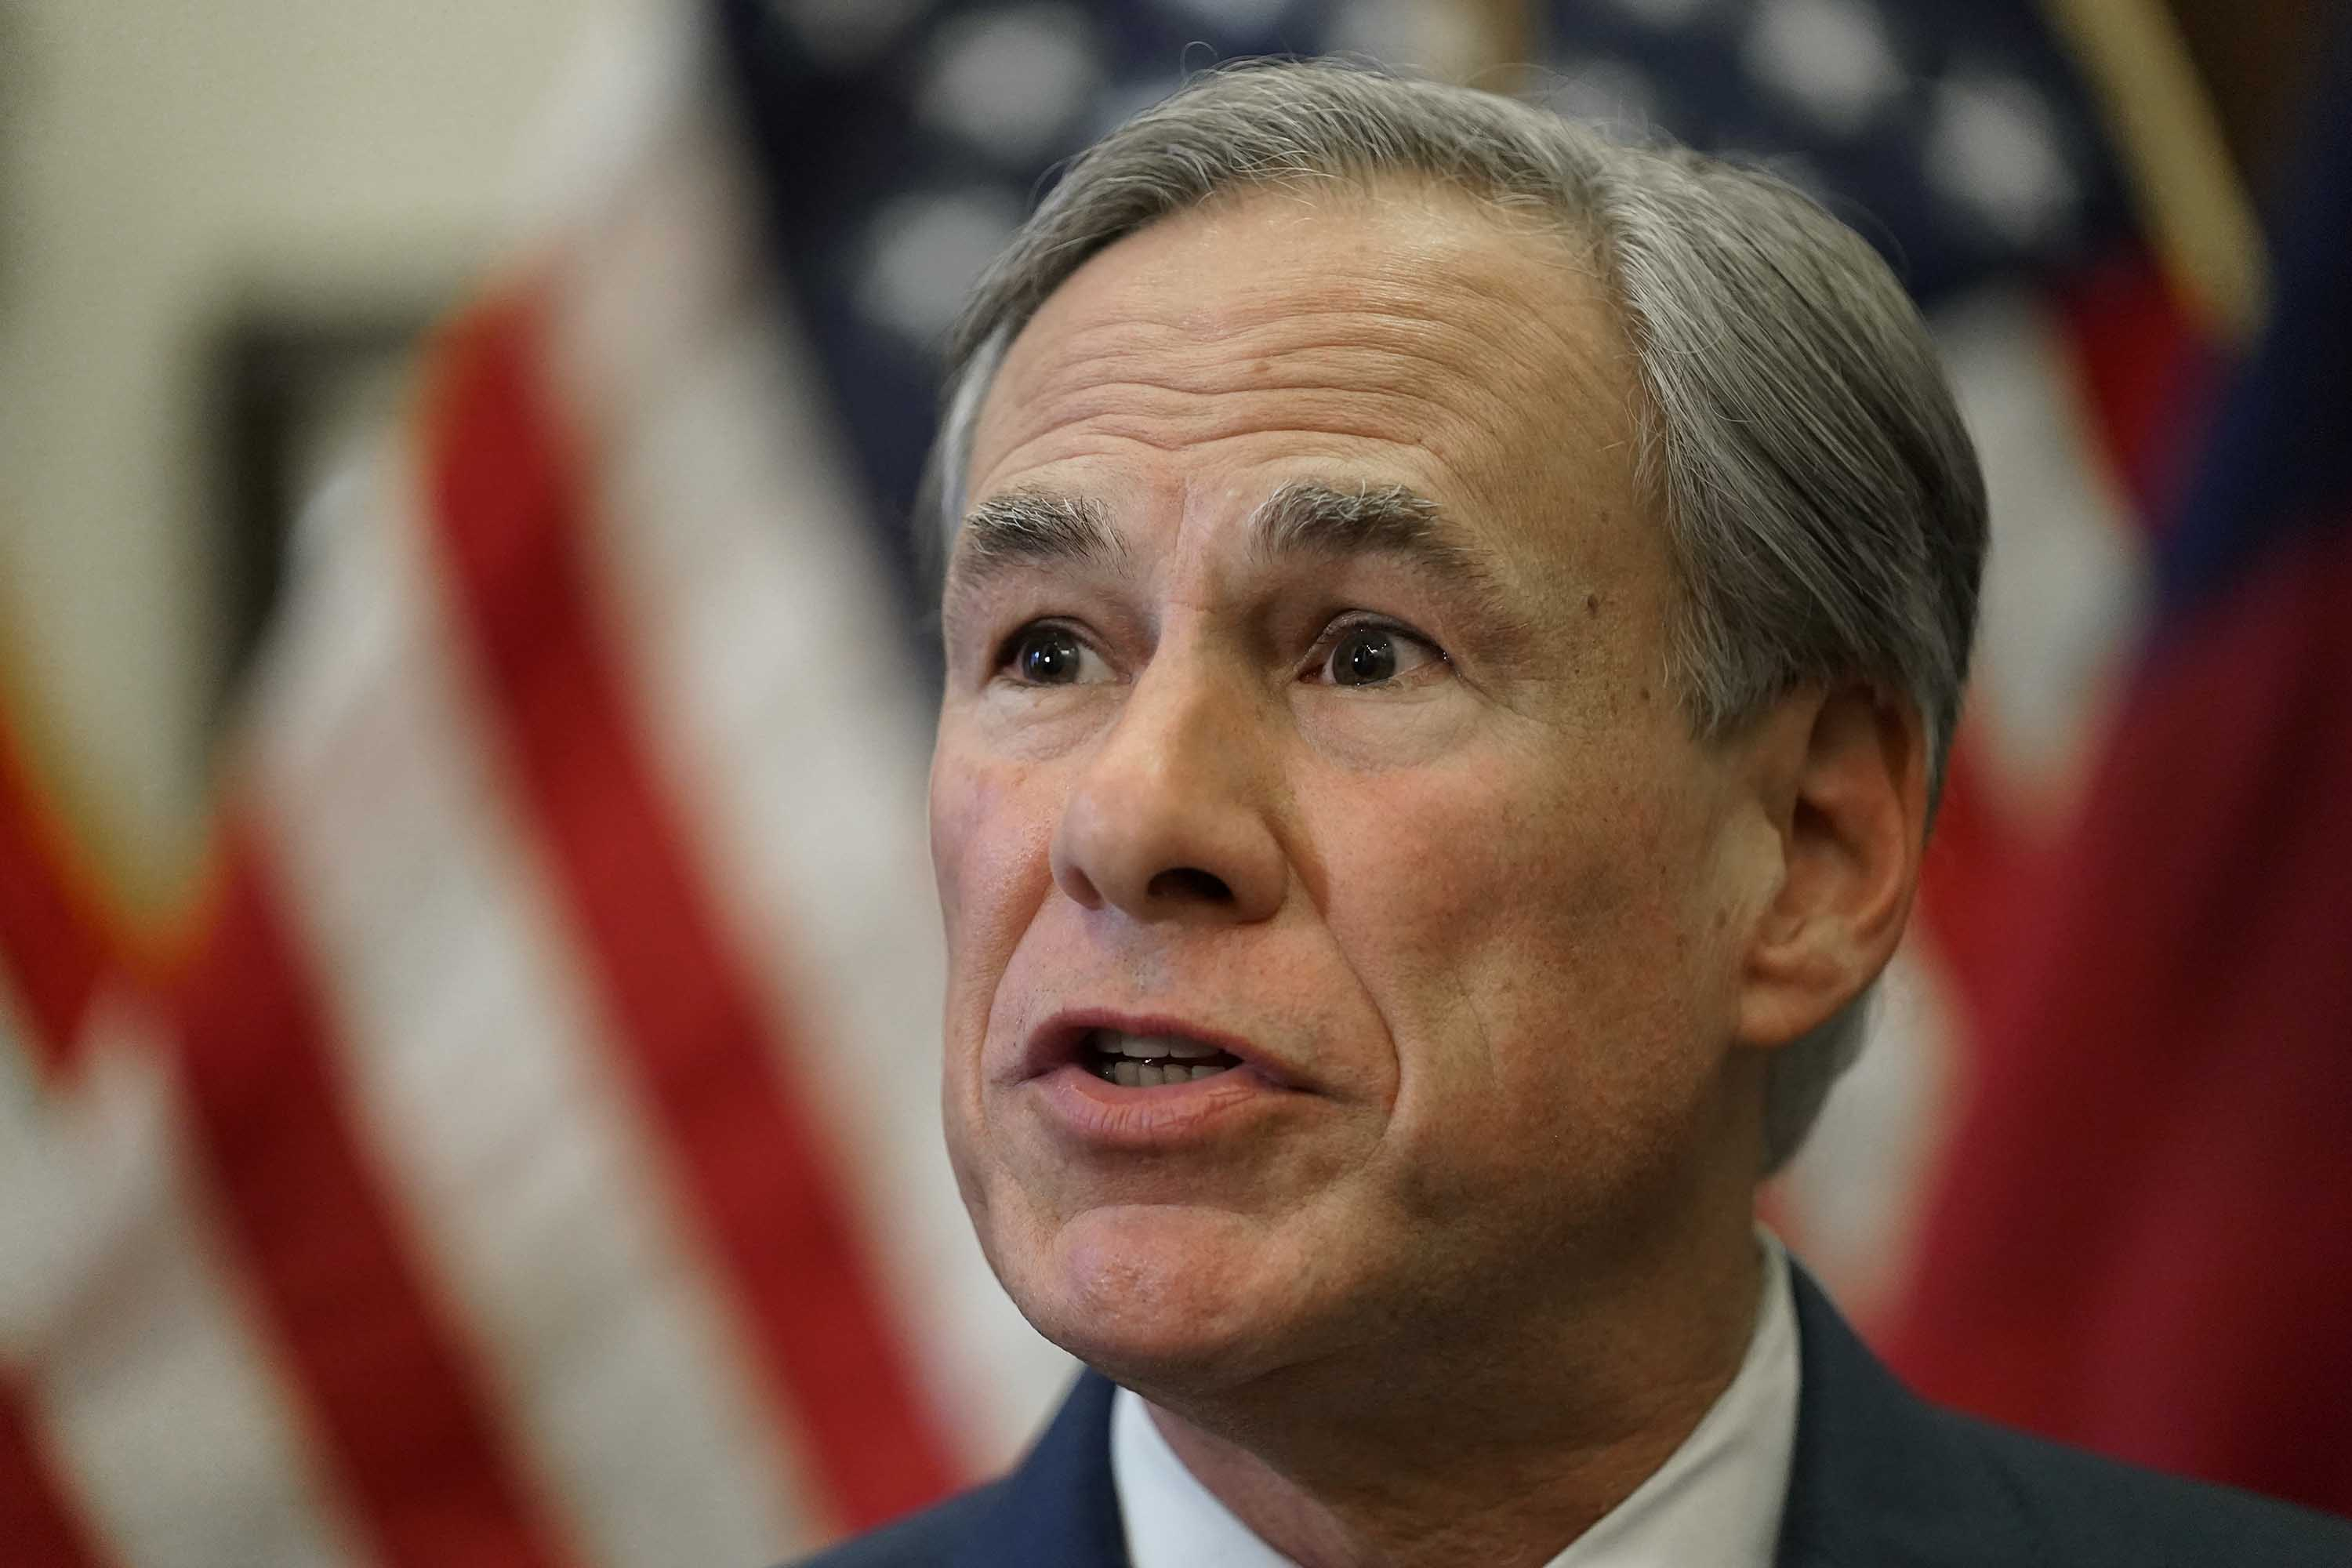 Texas Governor Greg Abbott is pictured speaking at a news conference in Austin, Texas on June 8.